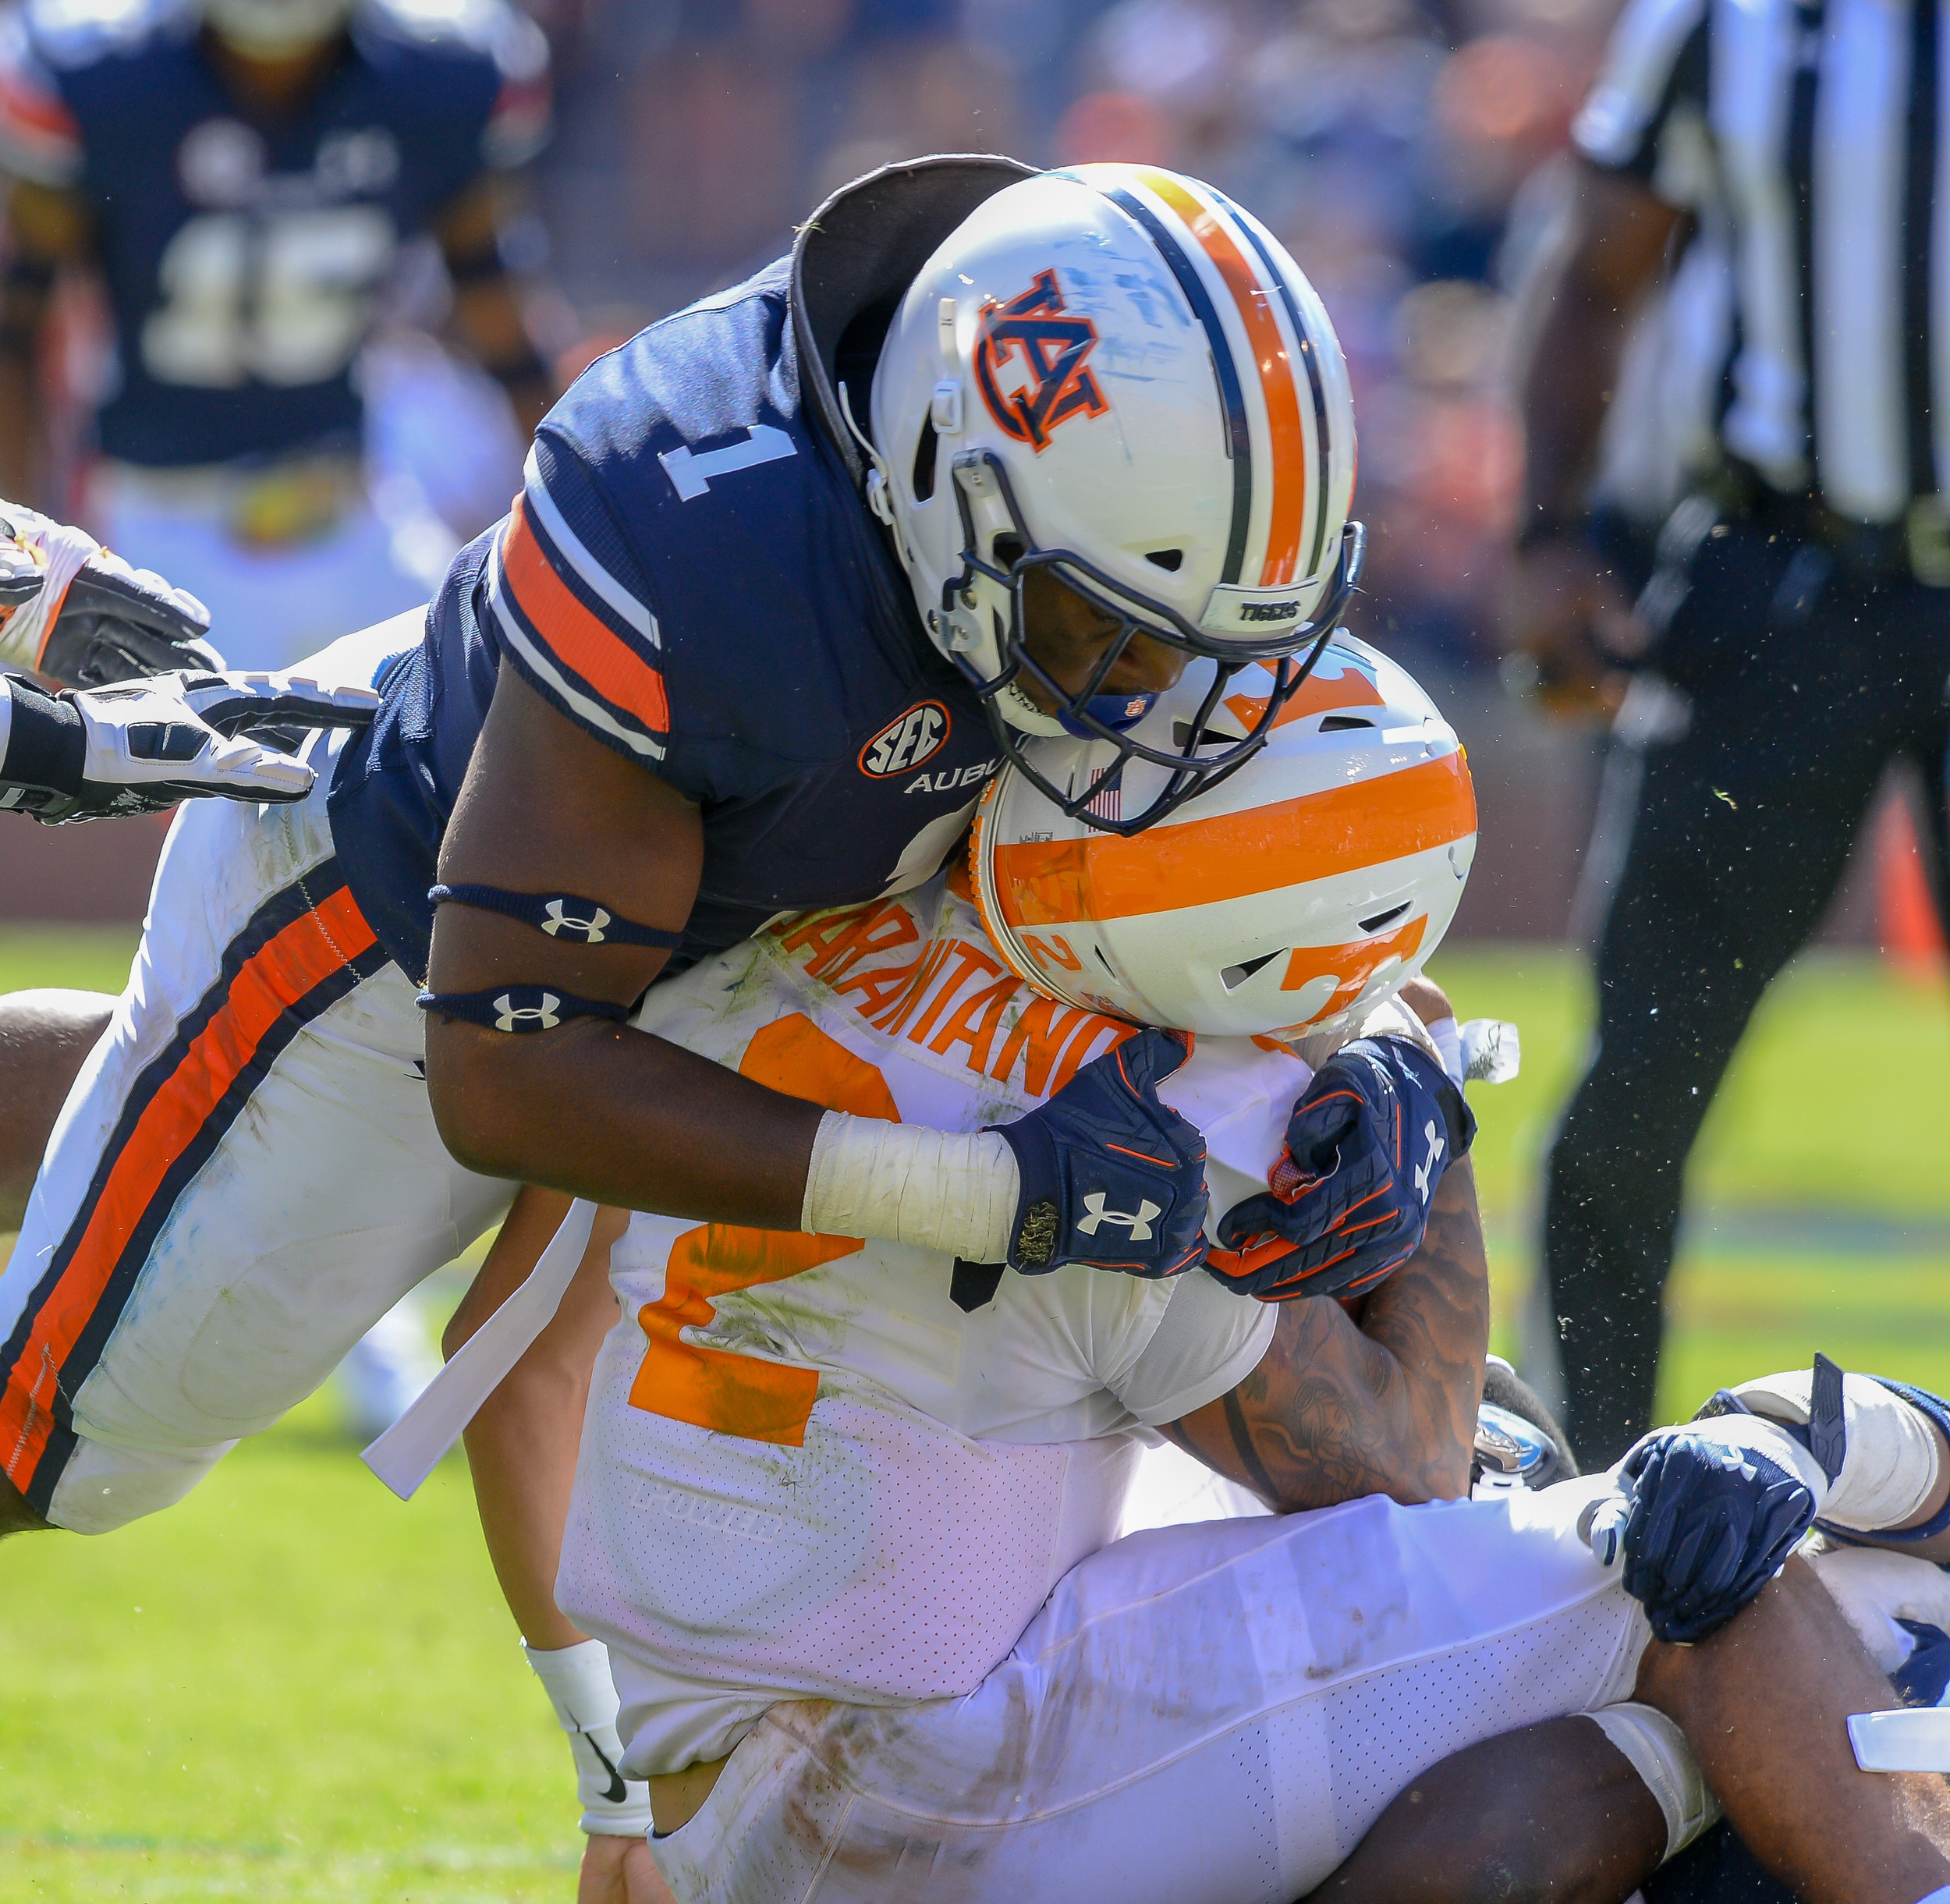 Auburn Tigers linebacker Big Kat Bryant (1) sacks Tennessee Volunteers quarterback Jarrett Guarantano (2) during the second half of Saturday's game, at Jordan-Hare Stadium in Auburn, AL. Daily Mountain Eagle -  Jeff Johnsey